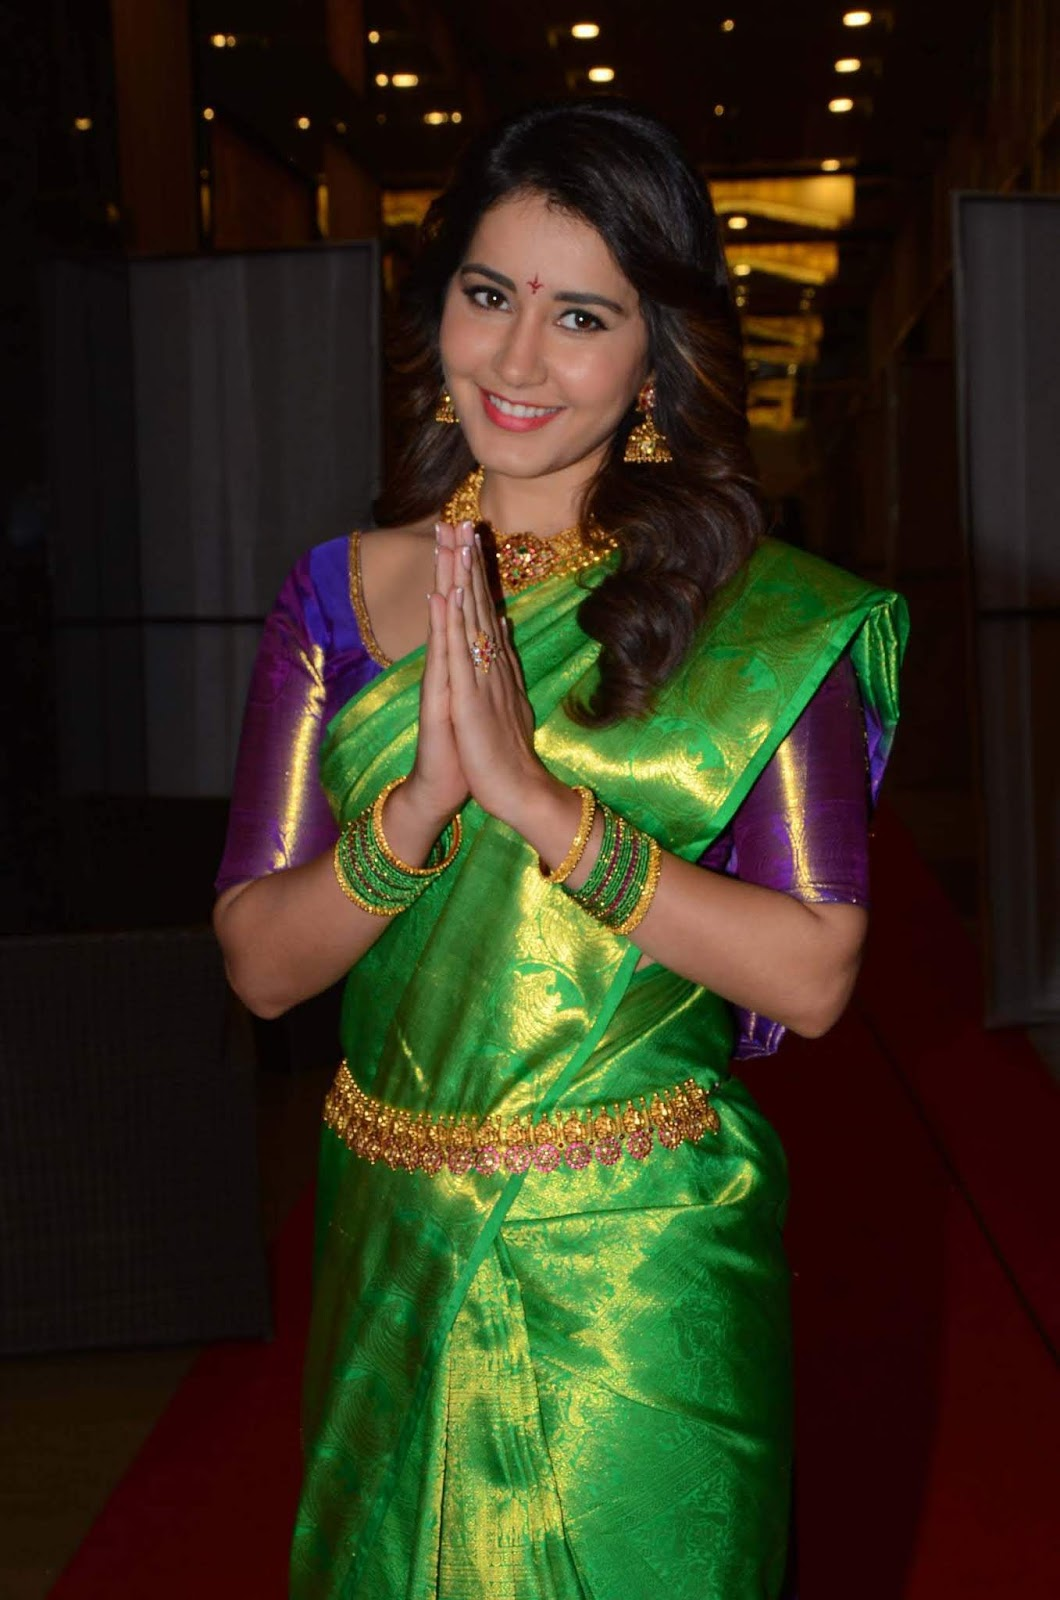 Raashi Khanna In Green Saree And Traditiona Jewelry